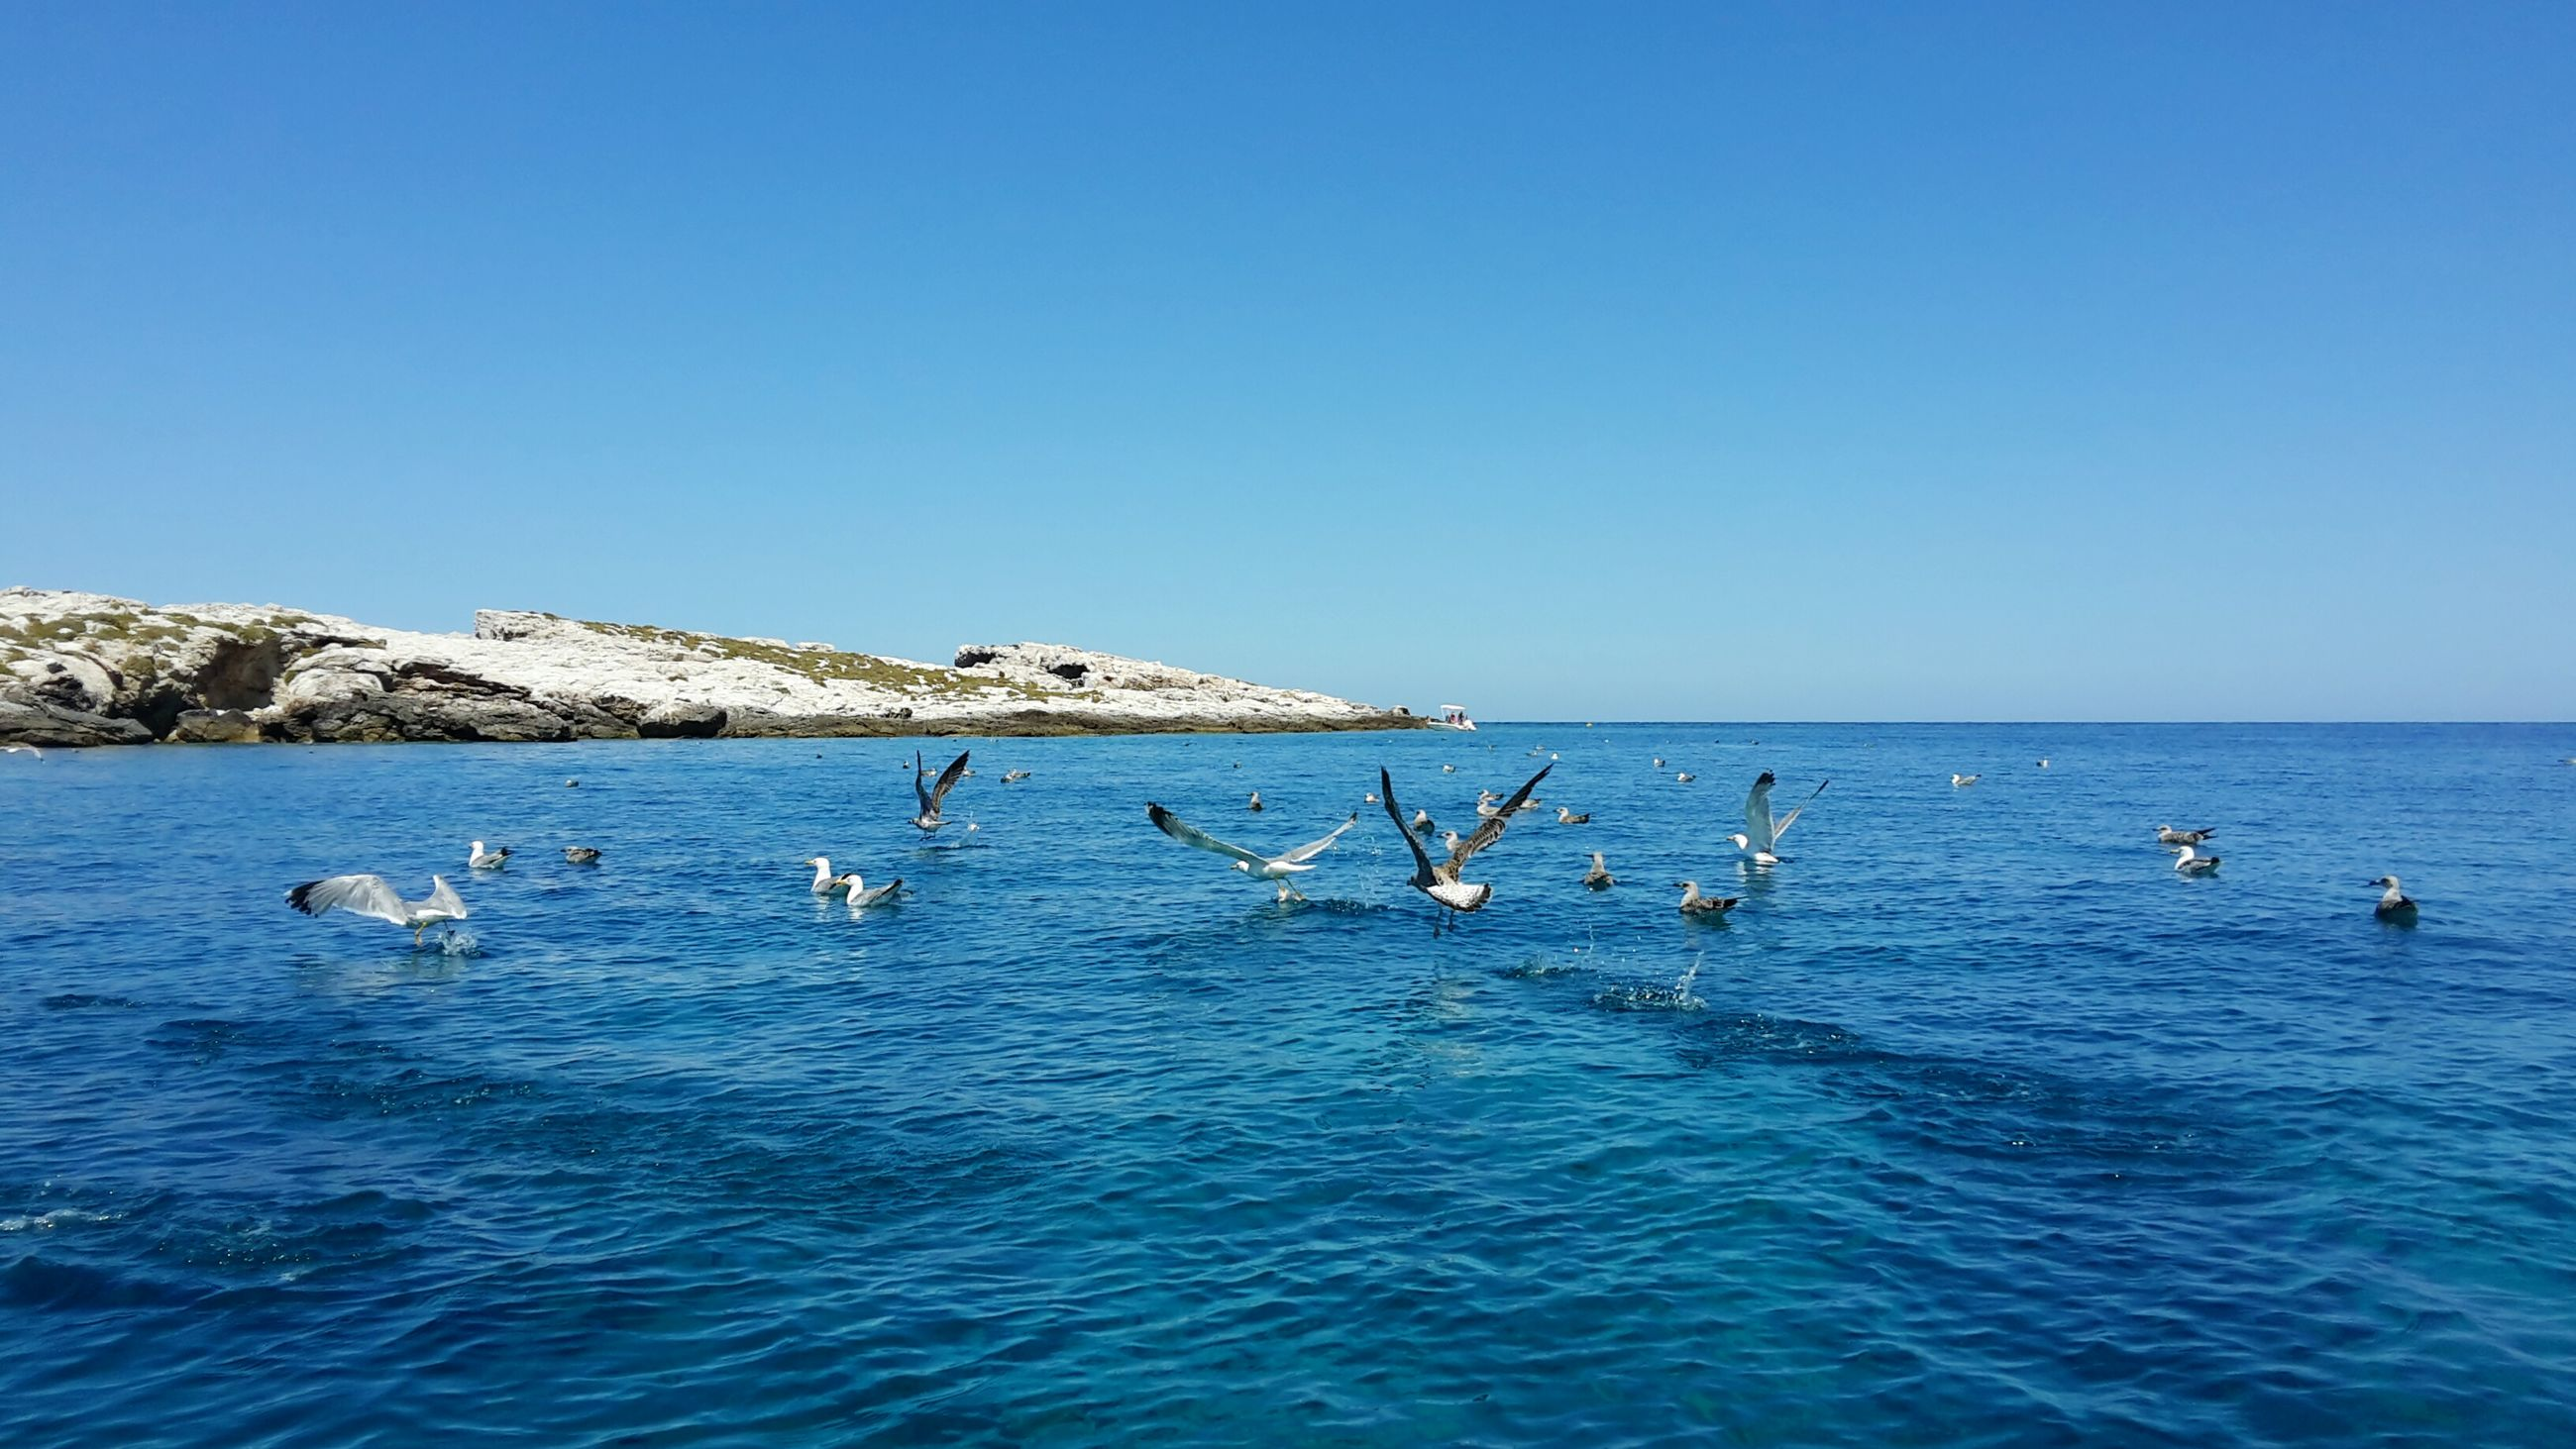 water, sea, clear sky, blue, waterfront, copy space, beauty in nature, nature, scenics, bird, horizon over water, animal themes, tranquility, swimming, tranquil scene, wildlife, animals in the wild, rippled, day